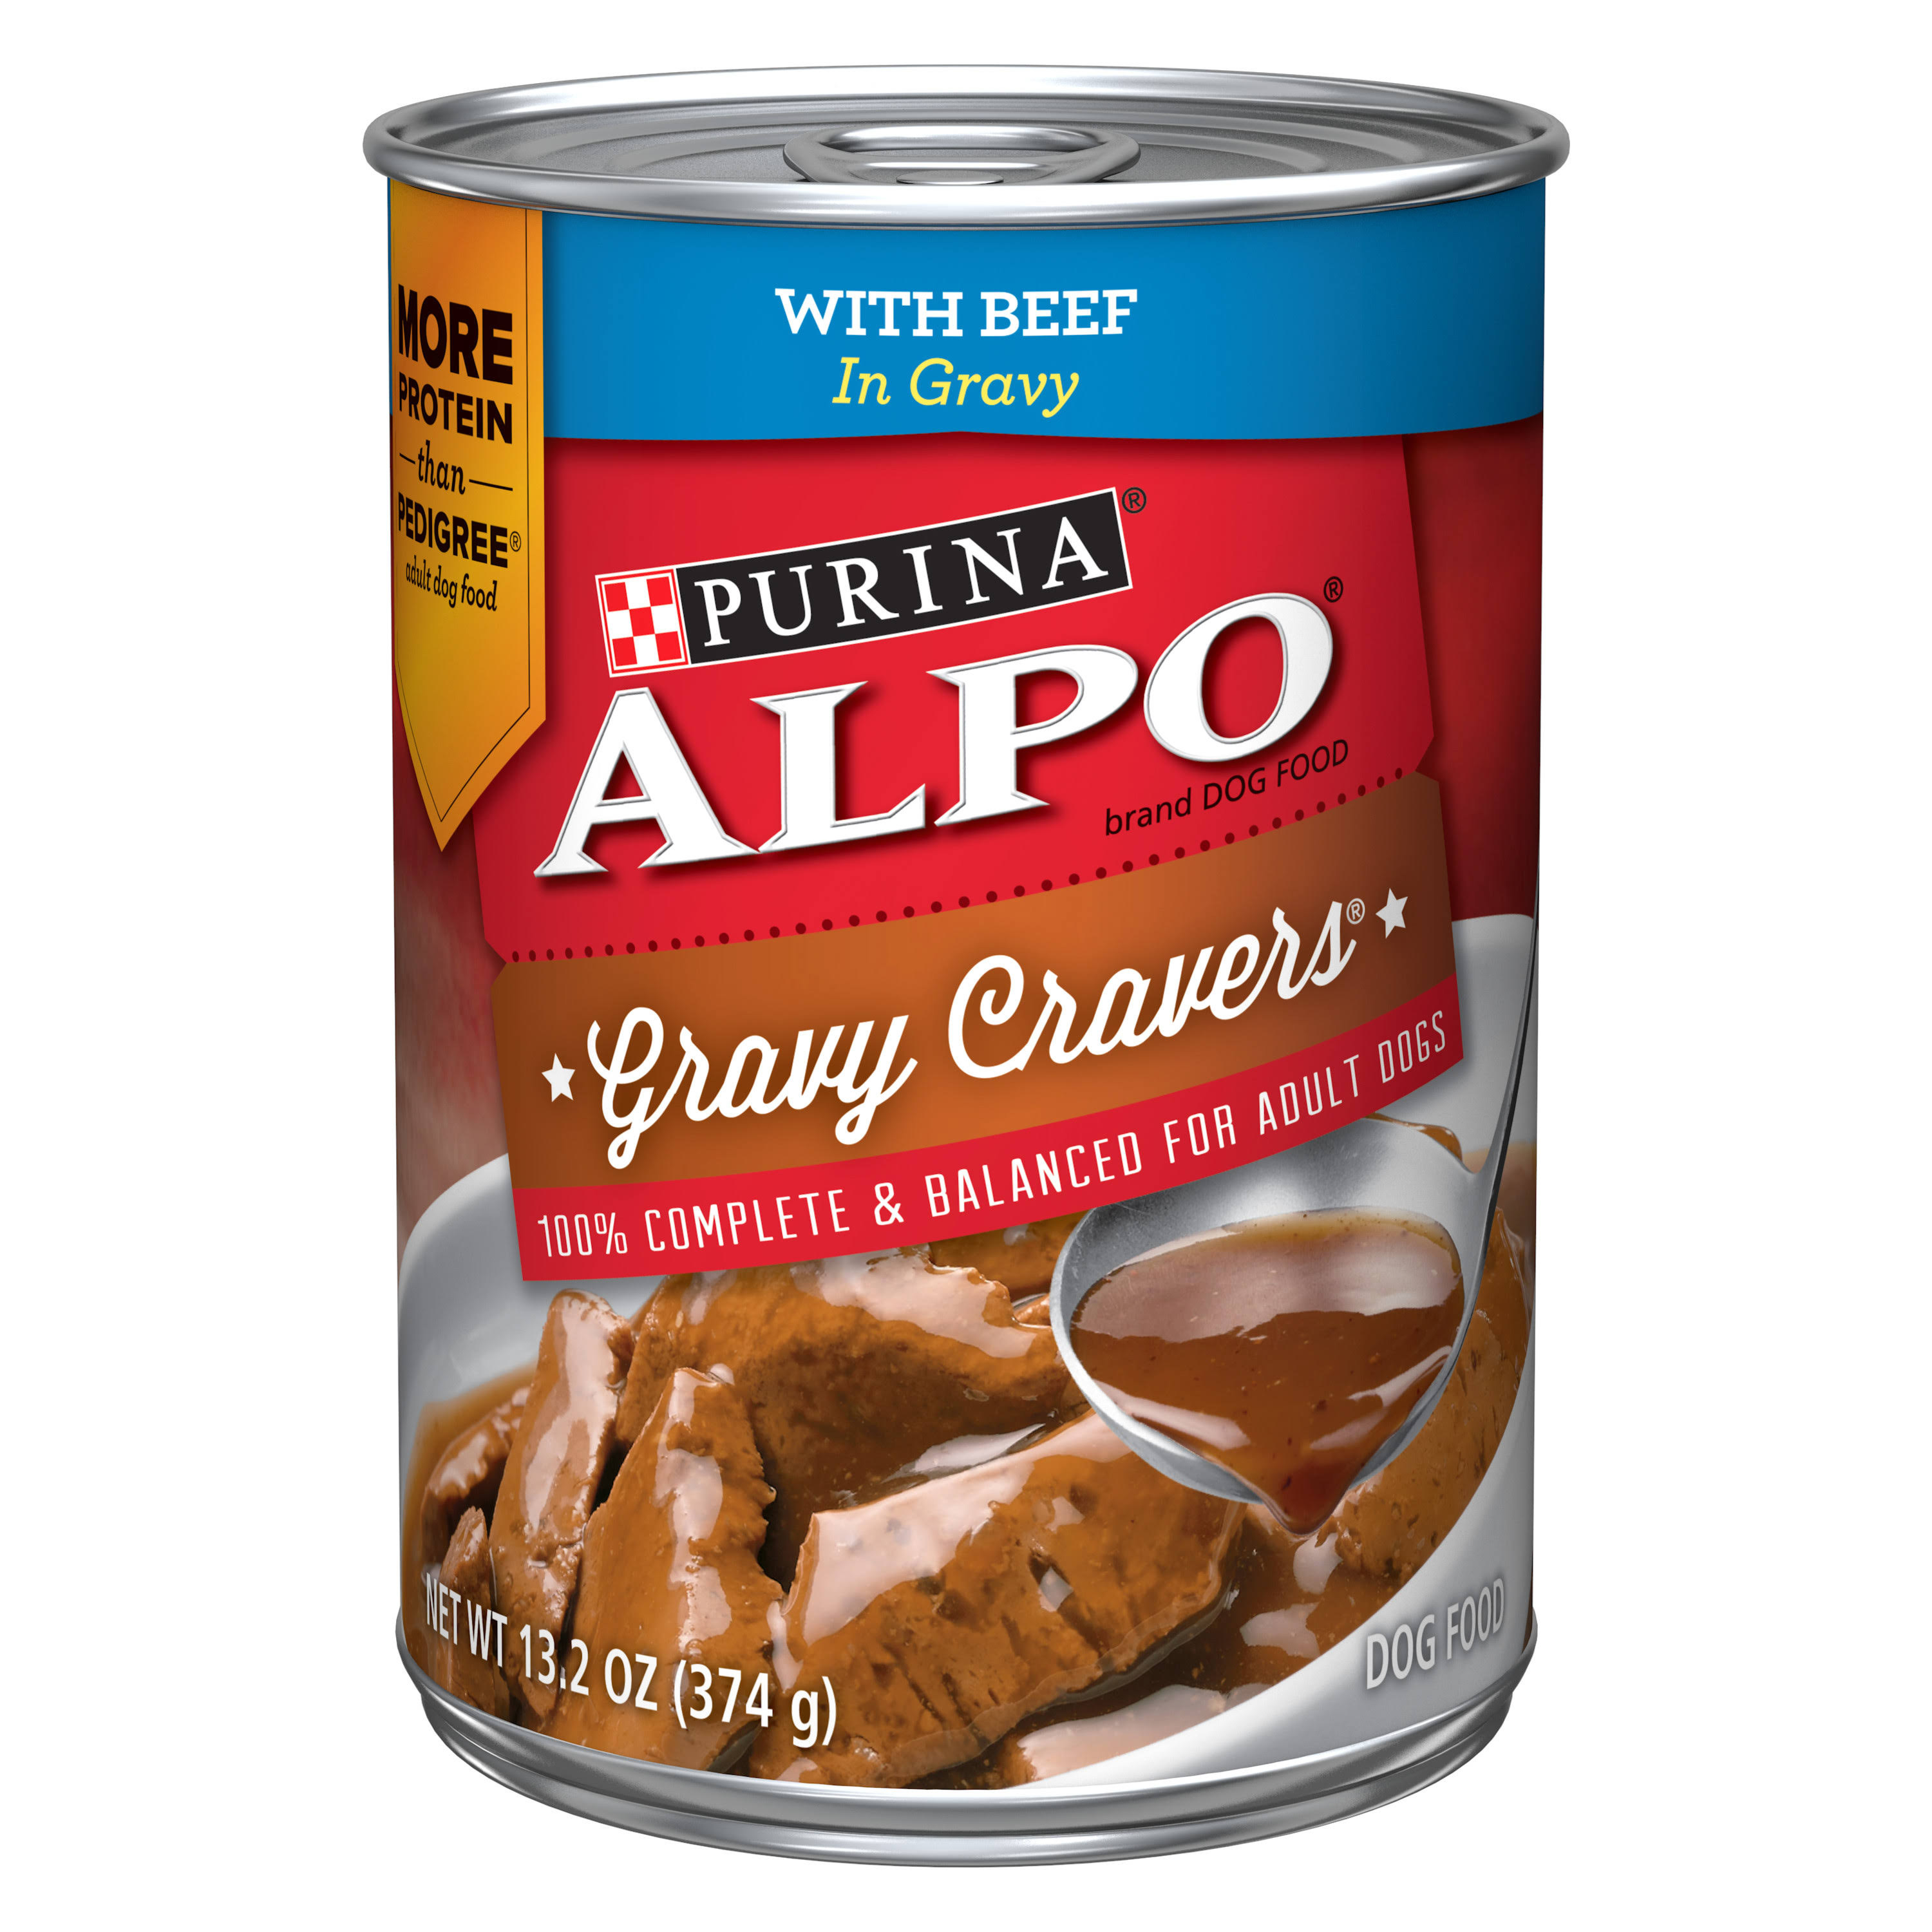 Purina Alpo Prime Slices Dog Food - with Beef in Gravy, 13.2oz